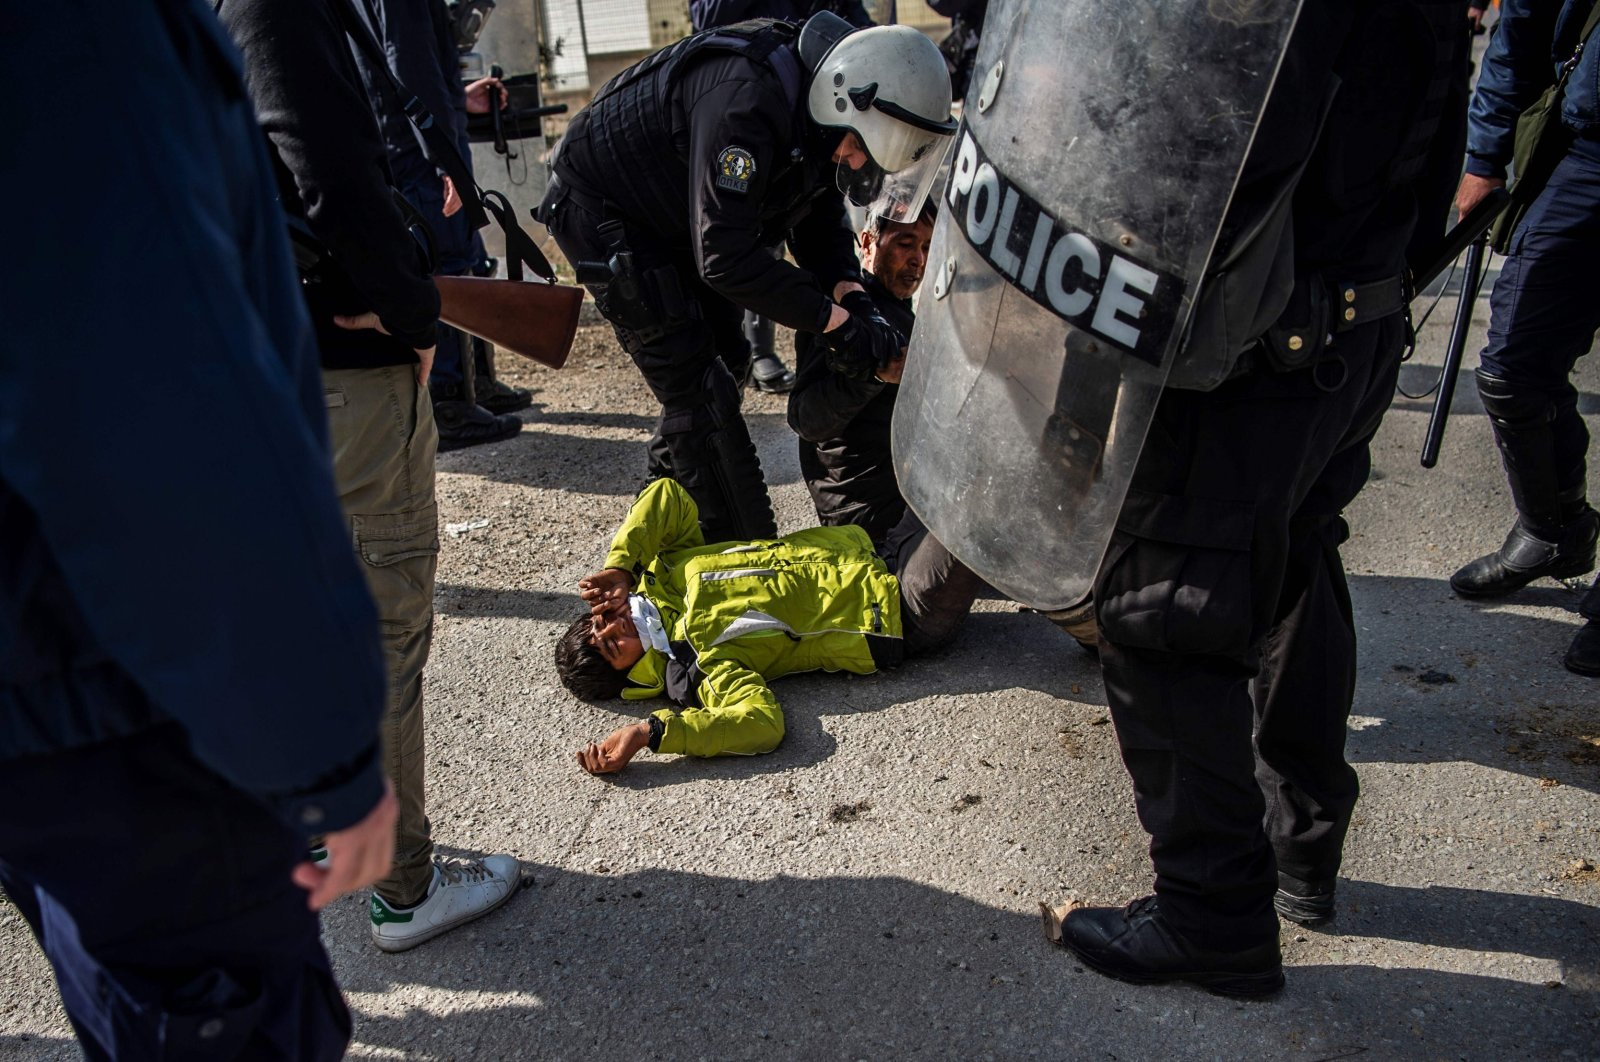 Riot police detain a migrant near the Moria camp for refugees and migrants, on the island of Lesbos, March 2, 2020 (AFP Photo)